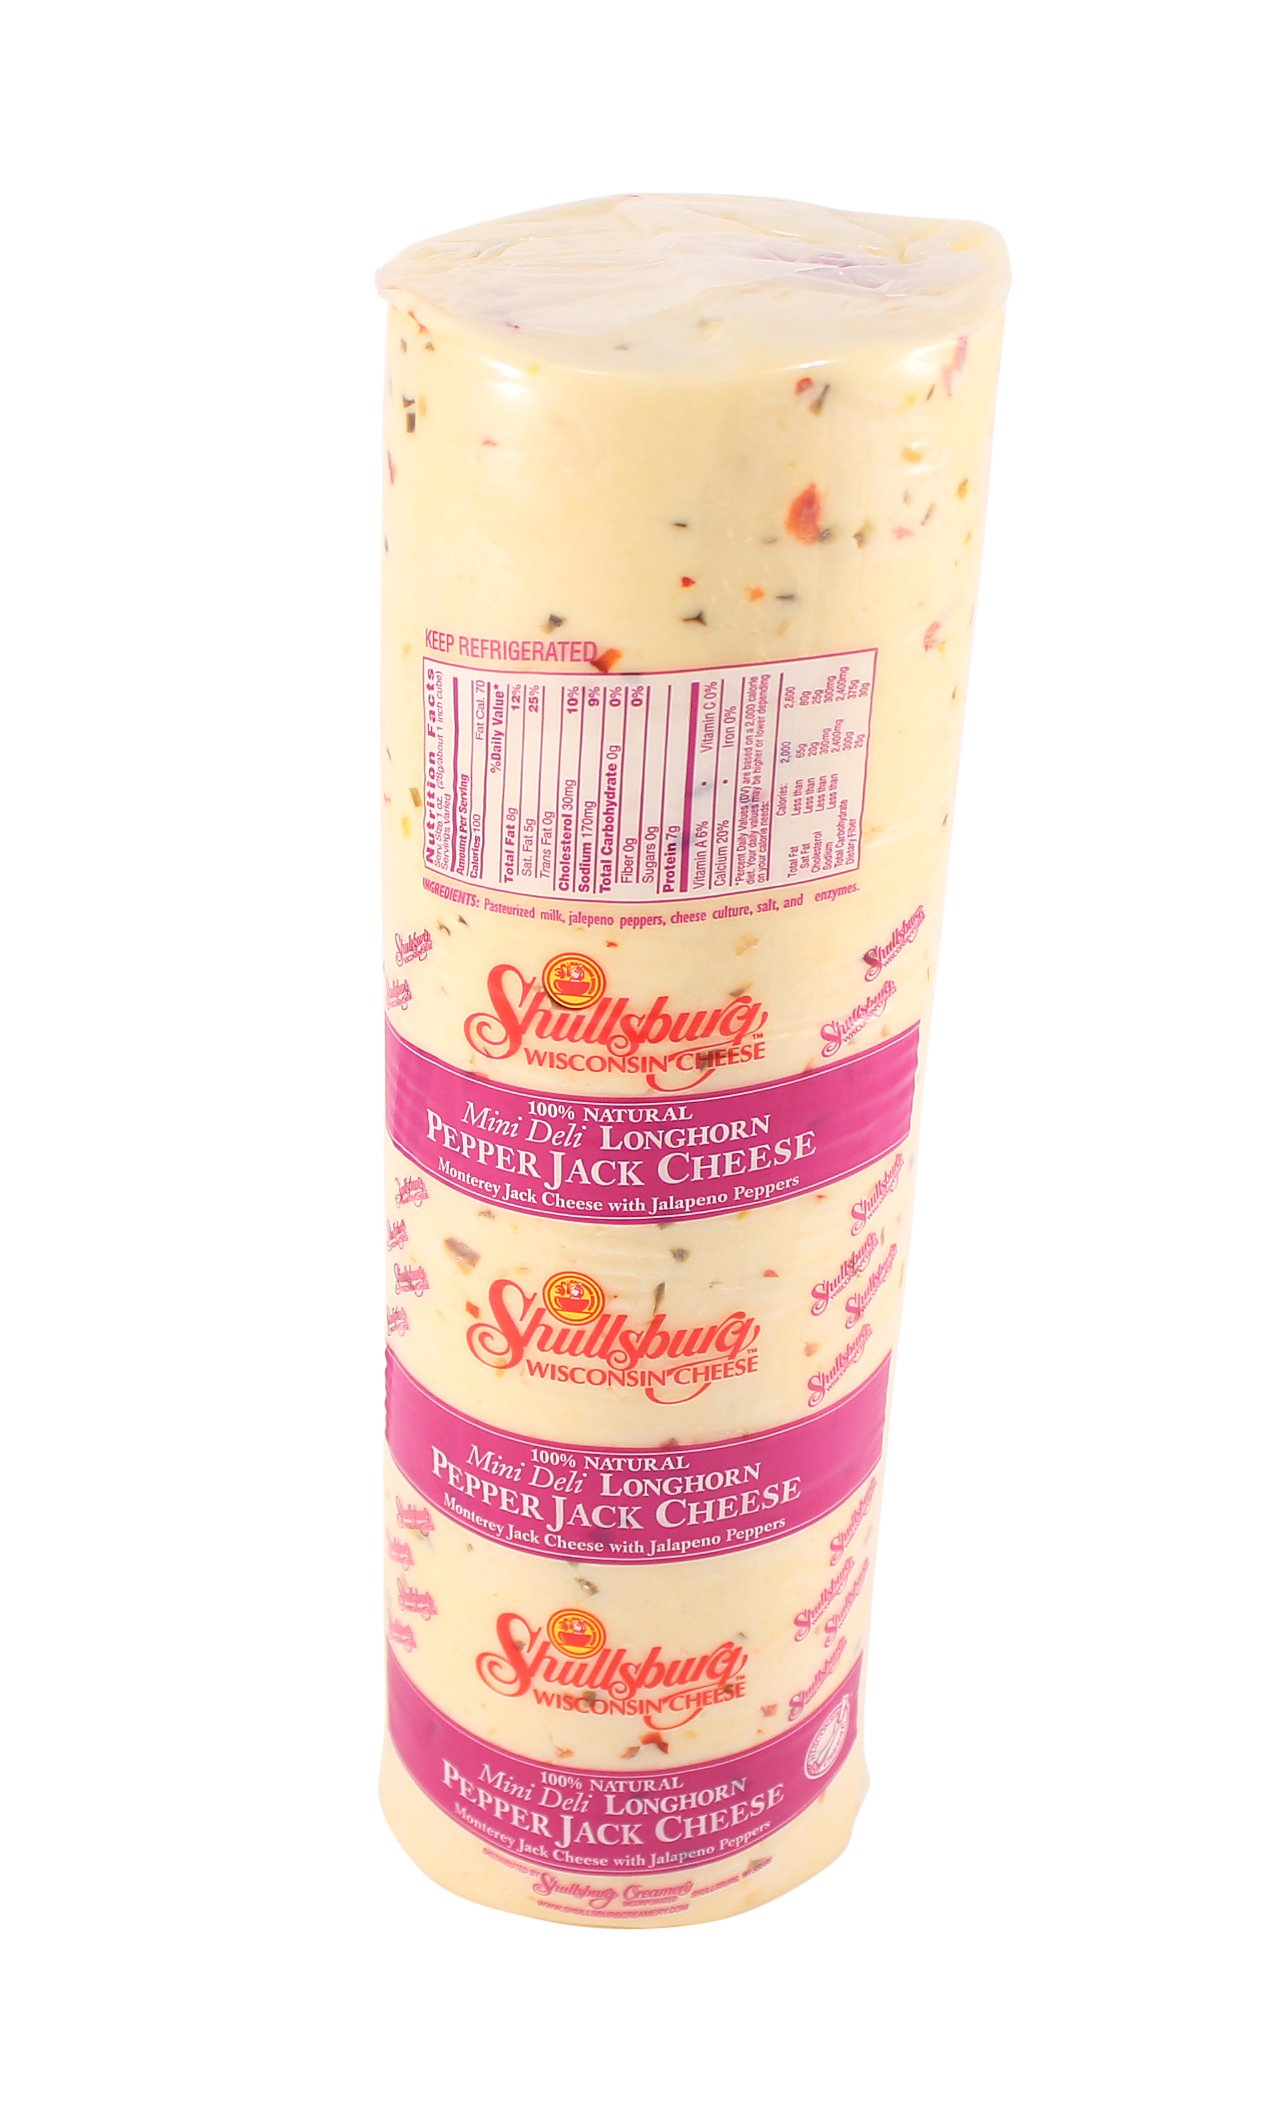 Shullsburg Creamery - Pepper Jack Cheese - 6 Pound Mini Deli Horn